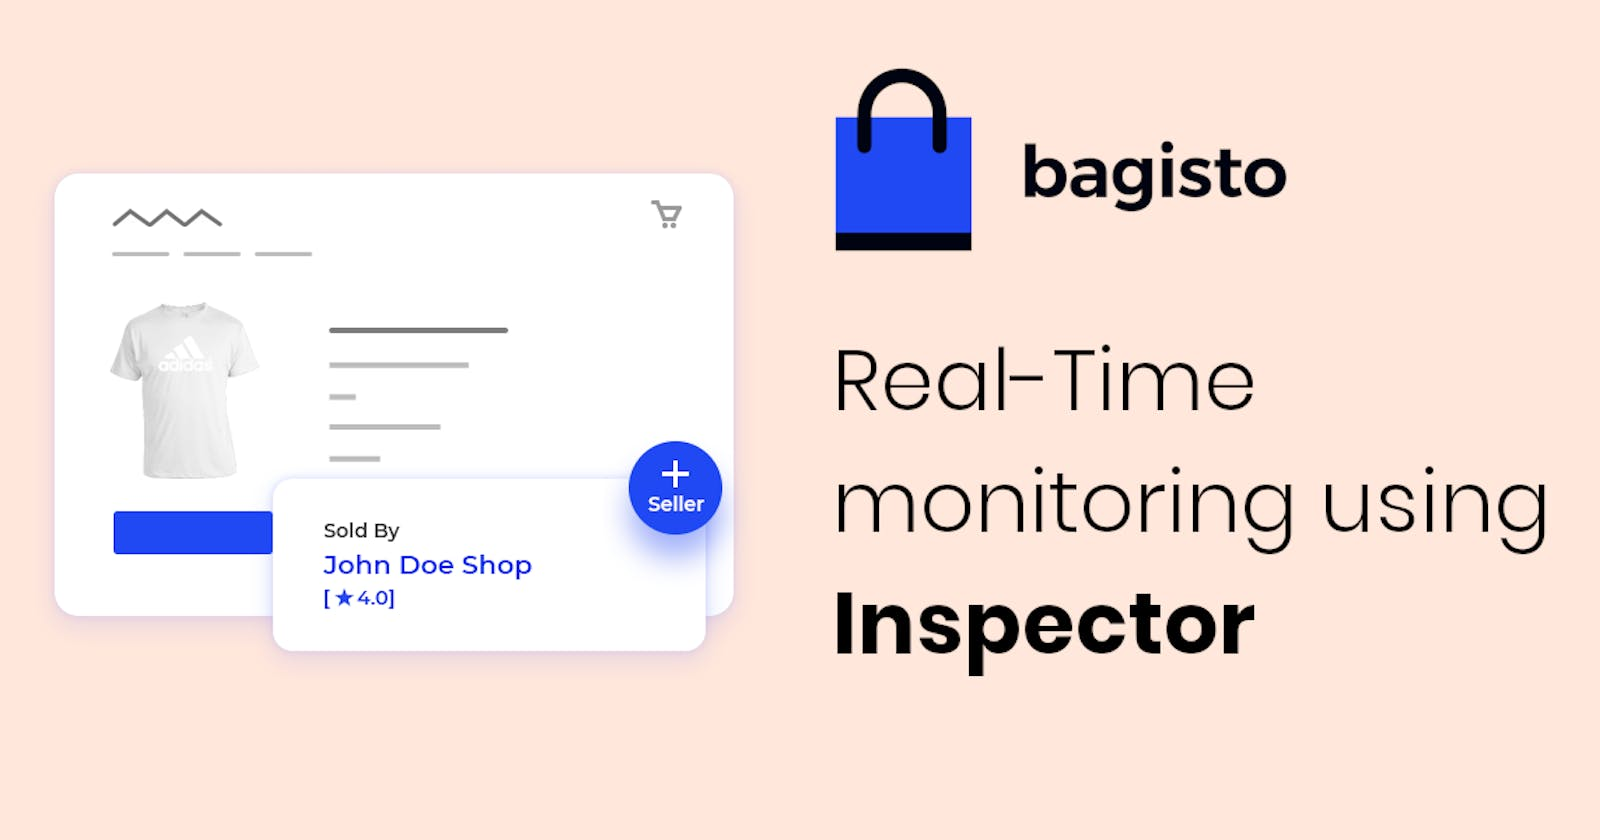 How to monitor a Bagisto e-commerce in Real-Time using Inspector